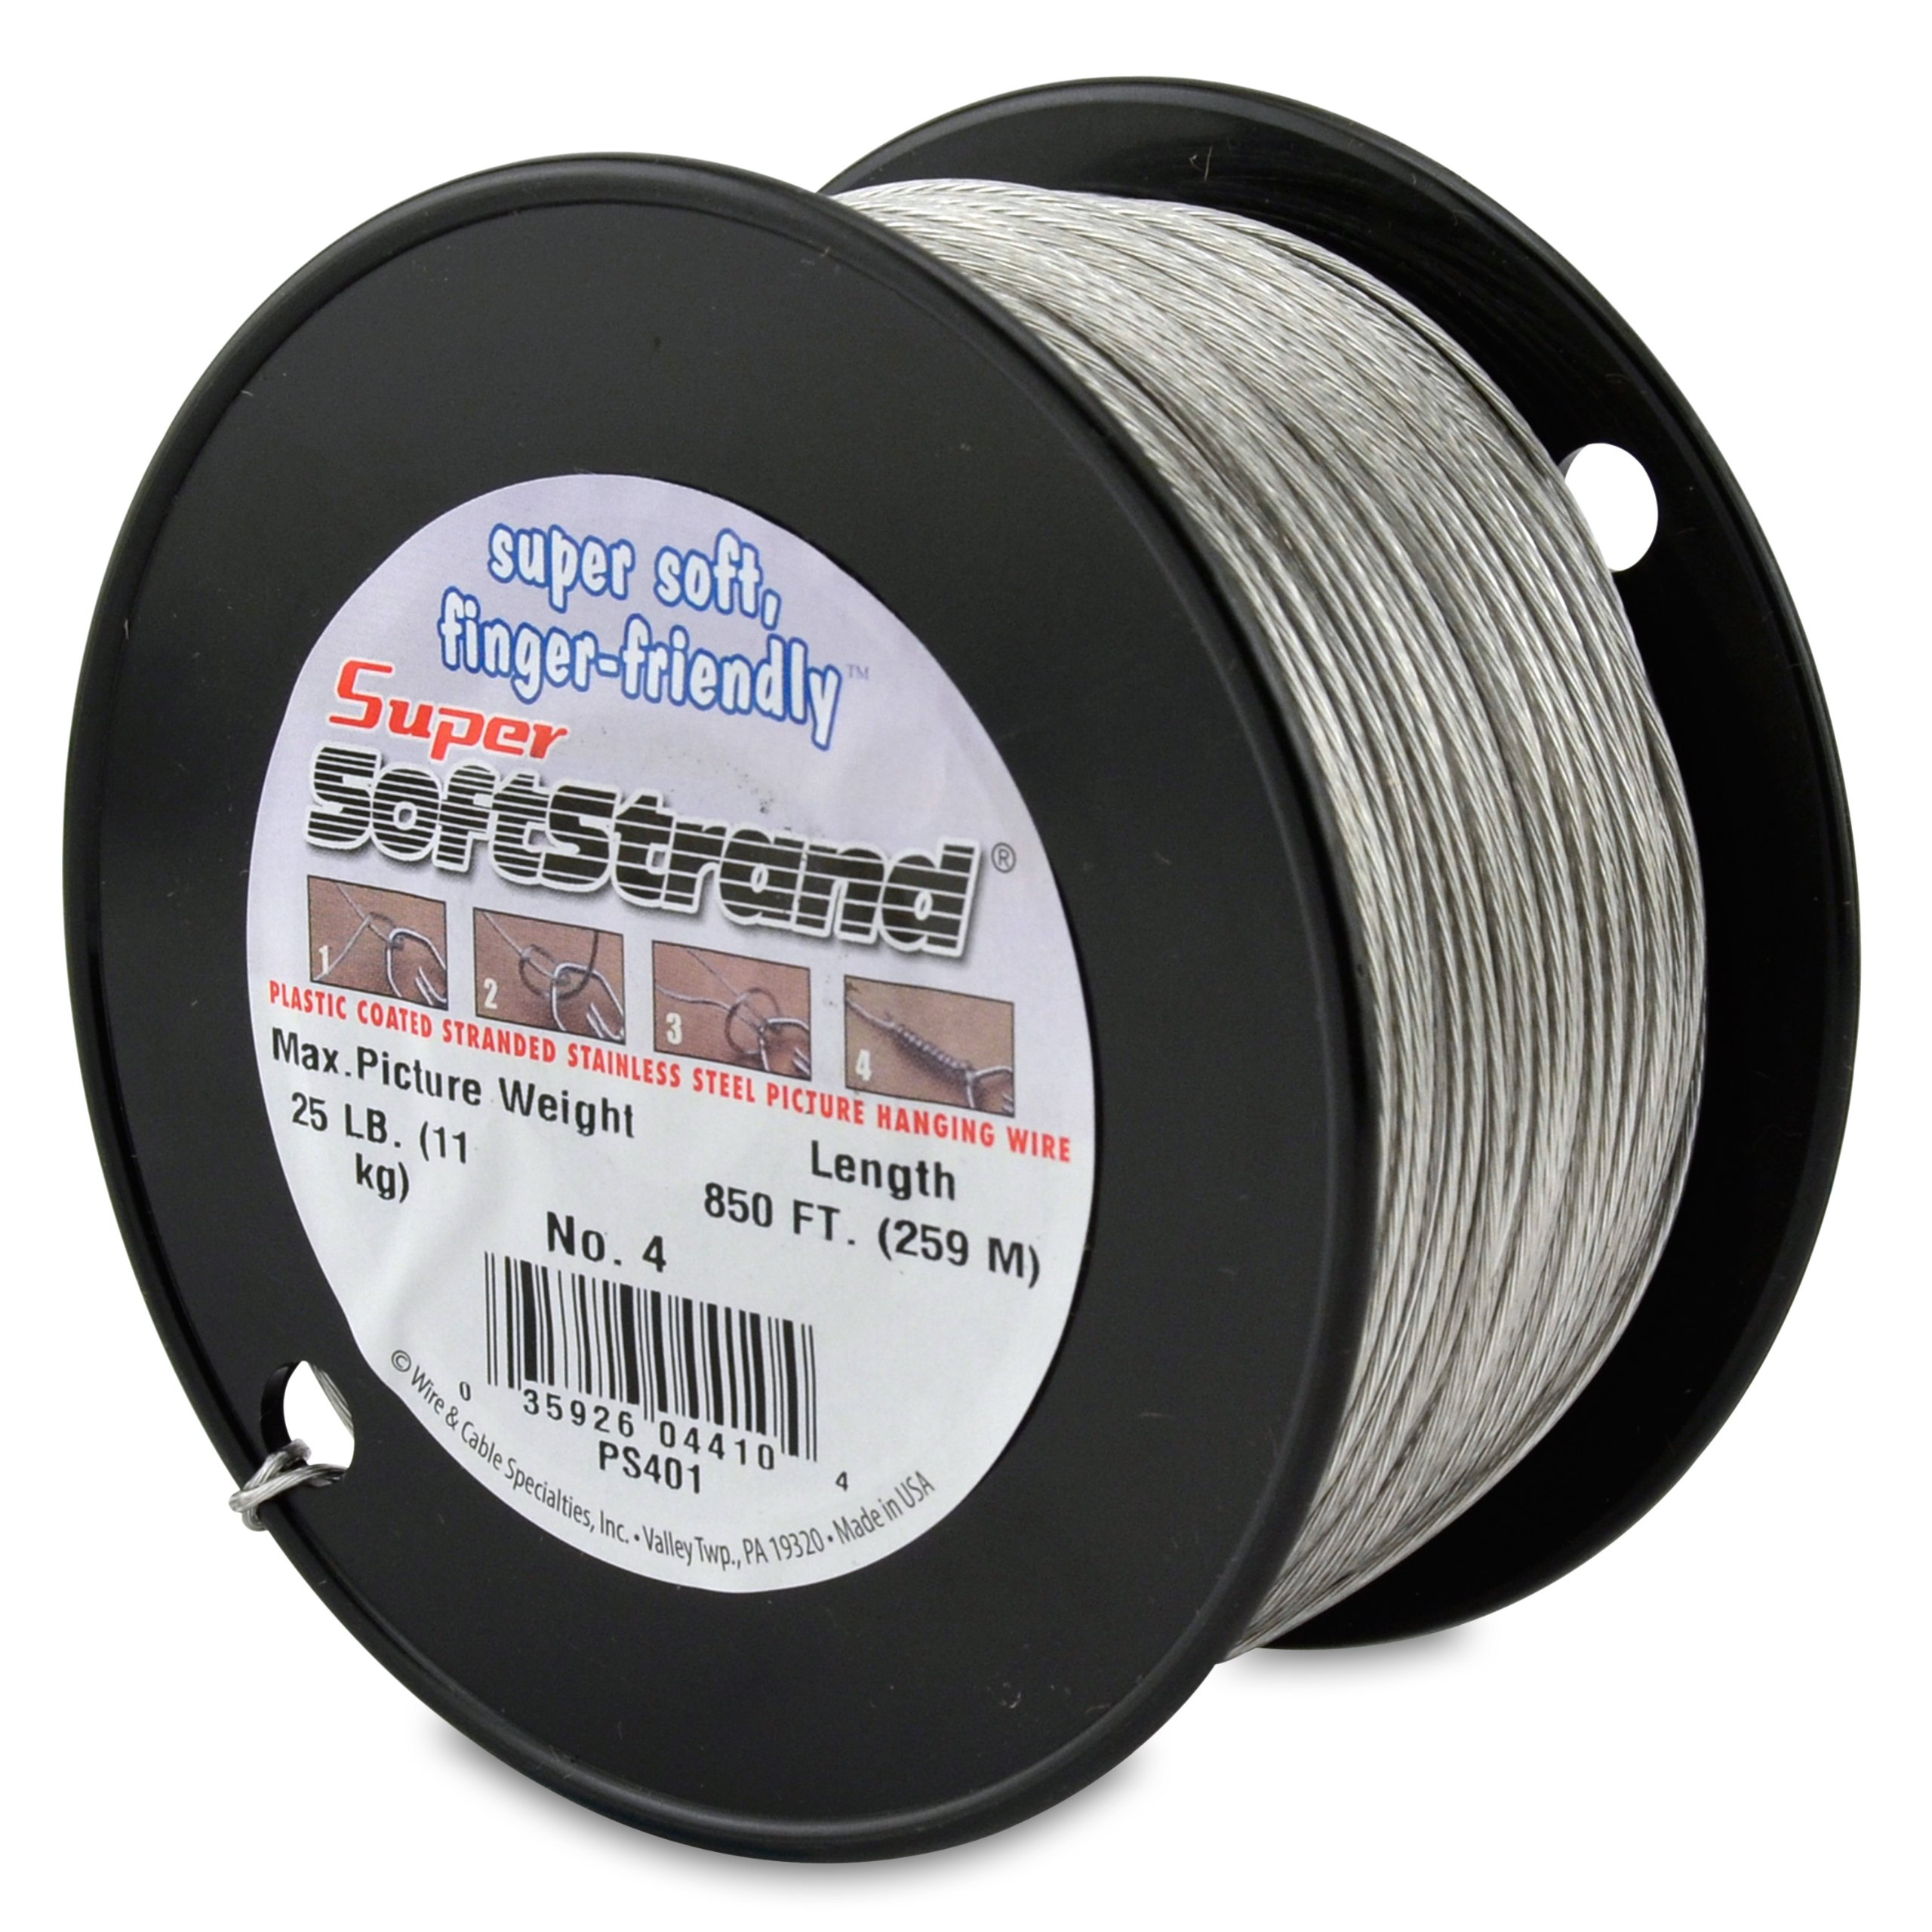 SuperSoftstrand Size 4-850-Feet Picture Wire Vinyl Coated Stranded Stainless Steel by Wire & Cable Specialties